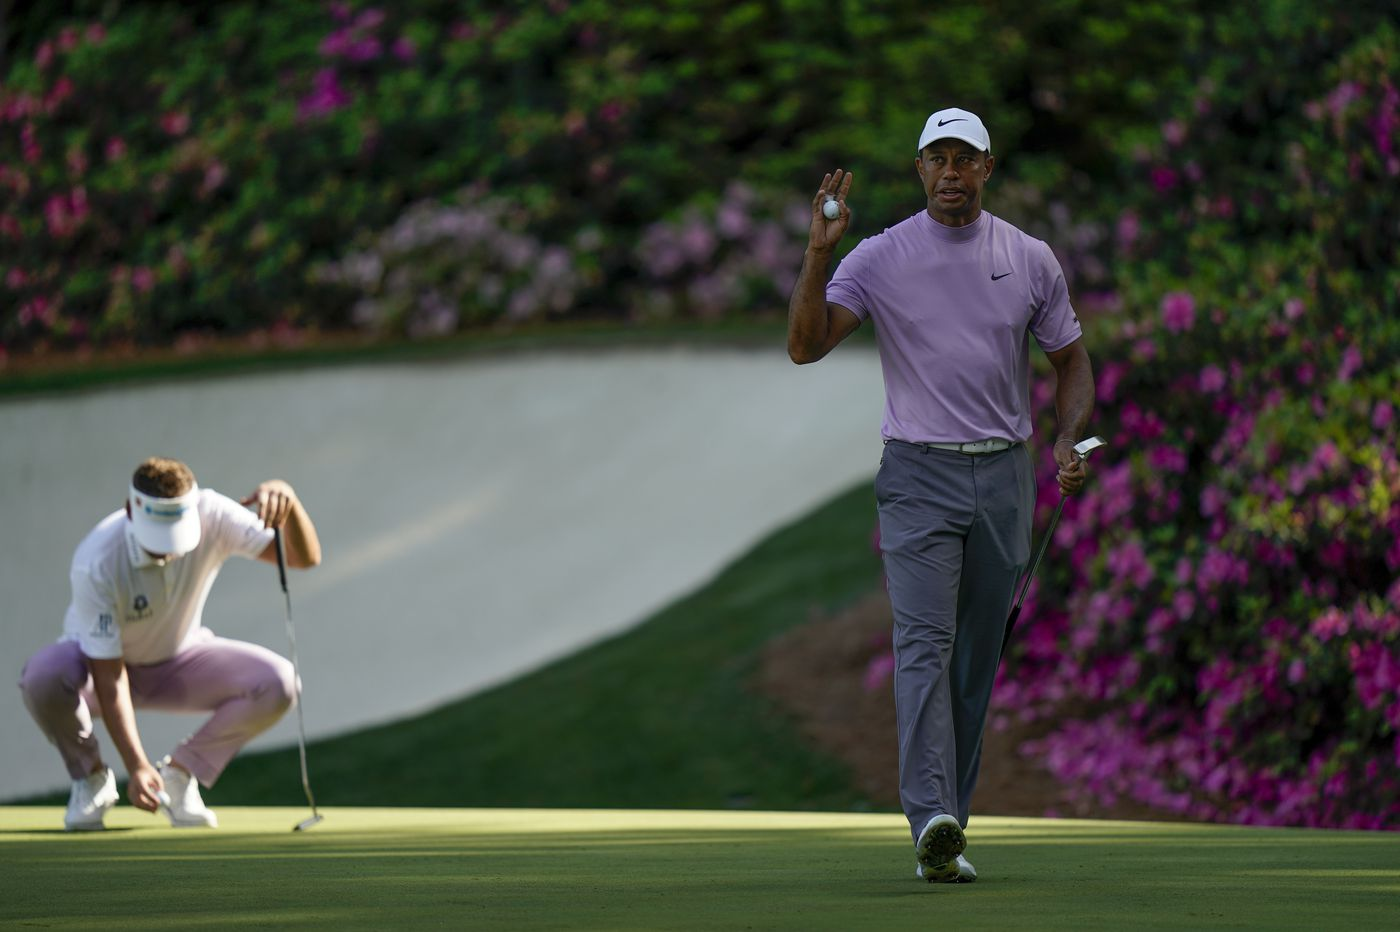 Masters 2019: Bettor wins $1.19 million on Tiger Woods' green jacket win